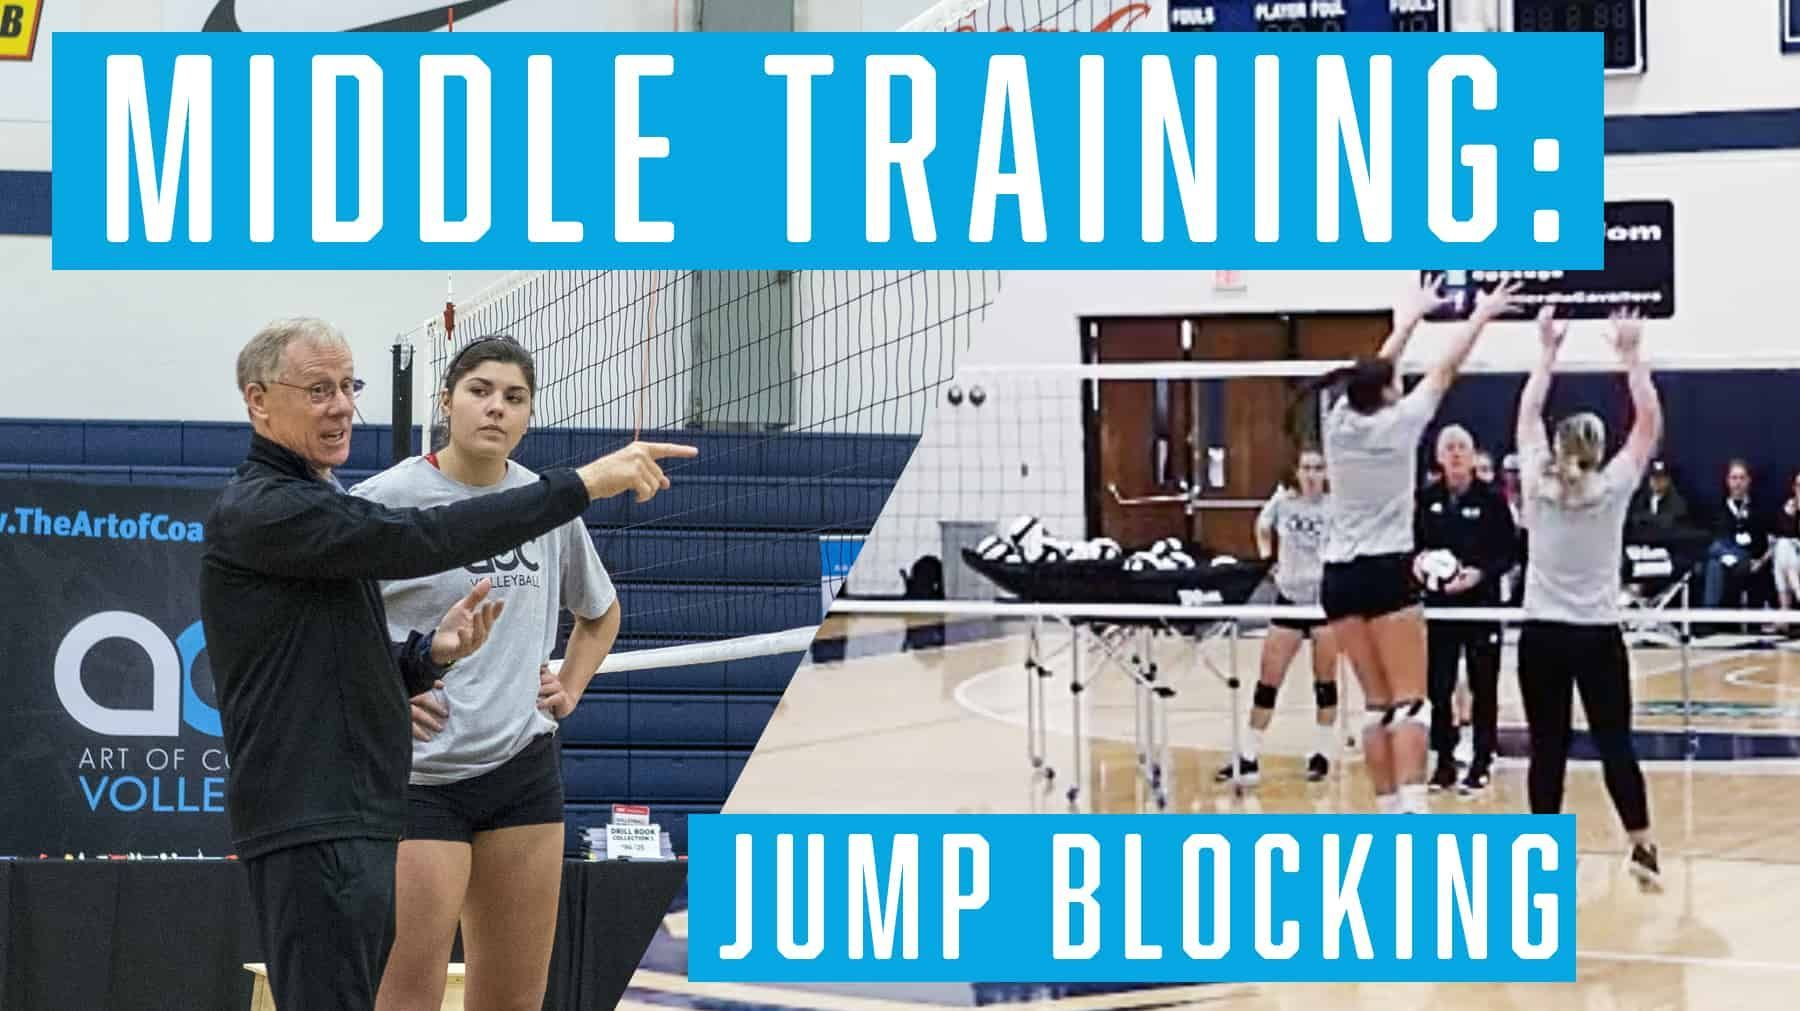 Middle Training Jump Blocking With Images Coaching Volleyball Stanford University Train